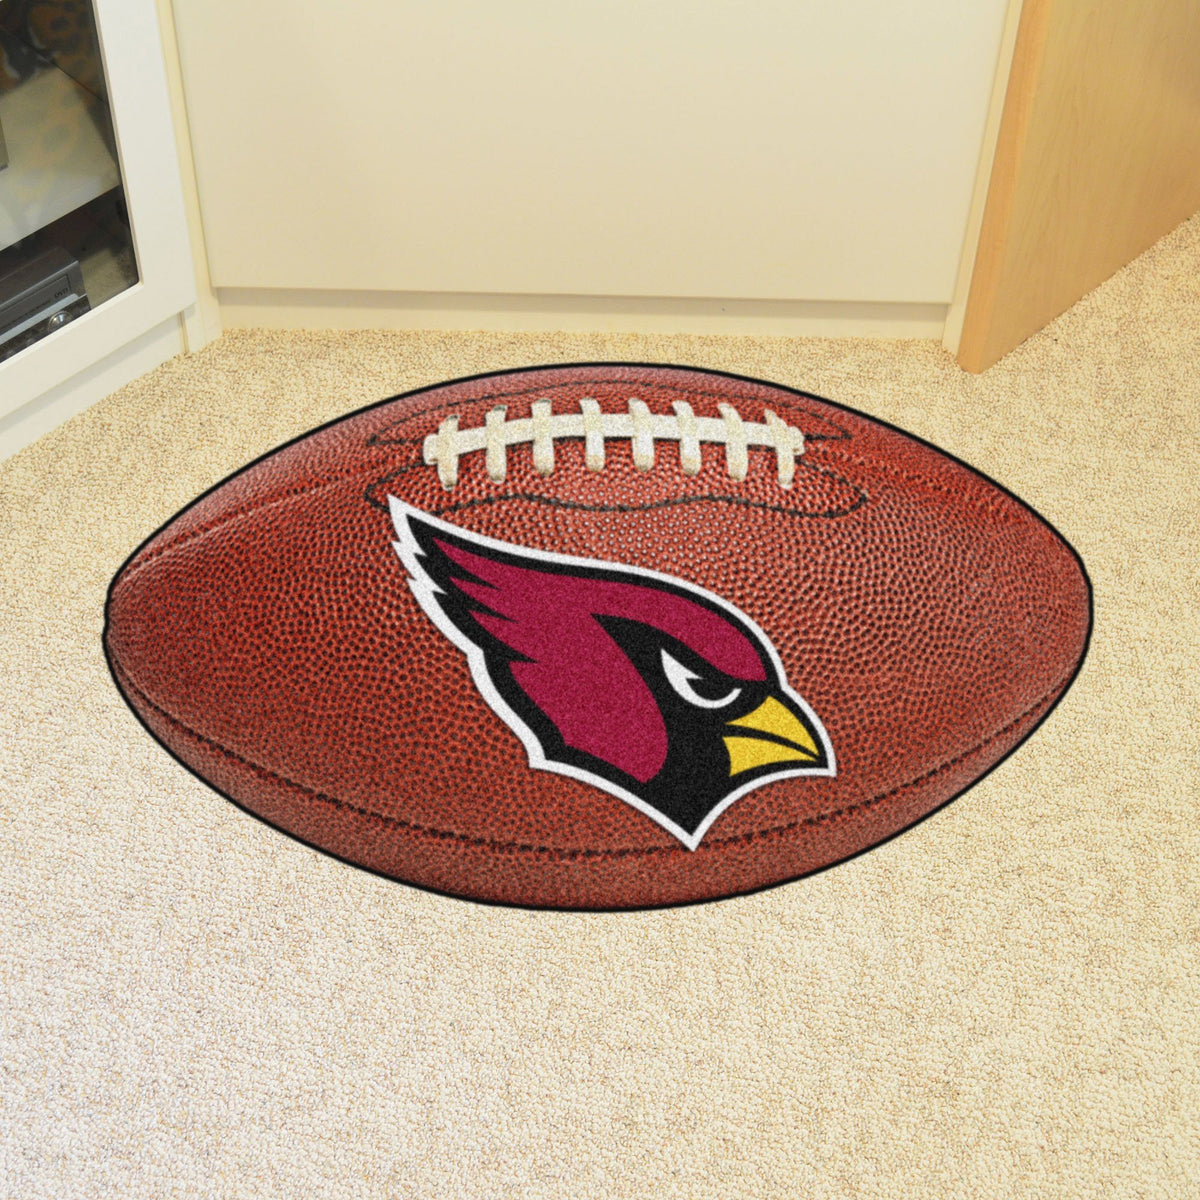 NFL - Football Mat NFL Mats, Custom Shape Rugs, Football Mat, NFL, Home Fan Mats Arizona Cardinals